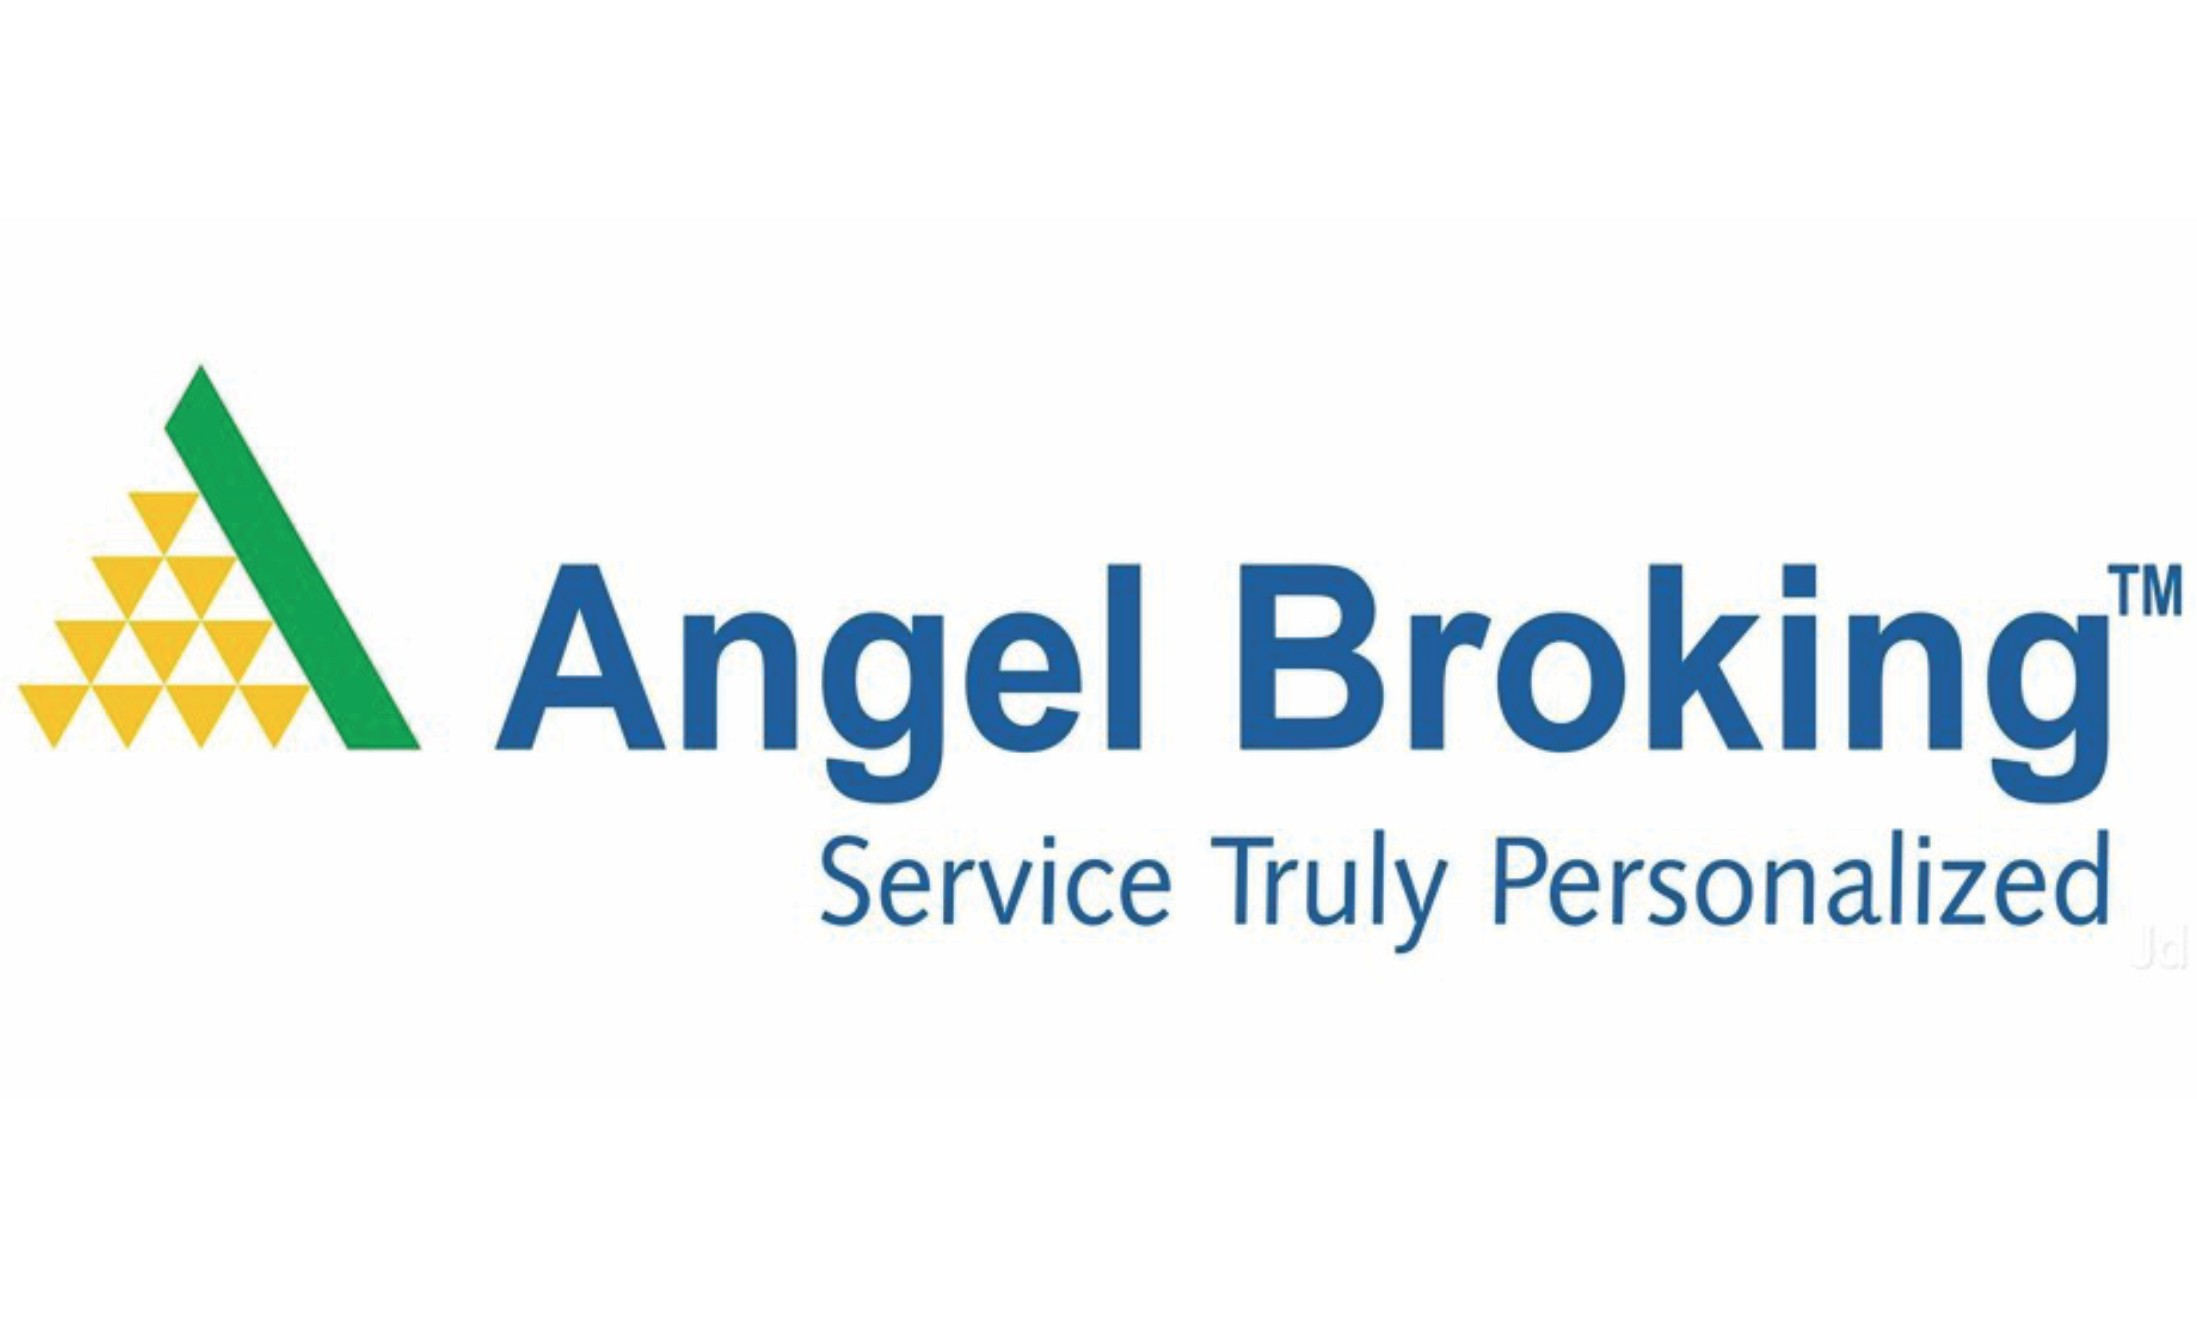 Angel Broking Ltd.